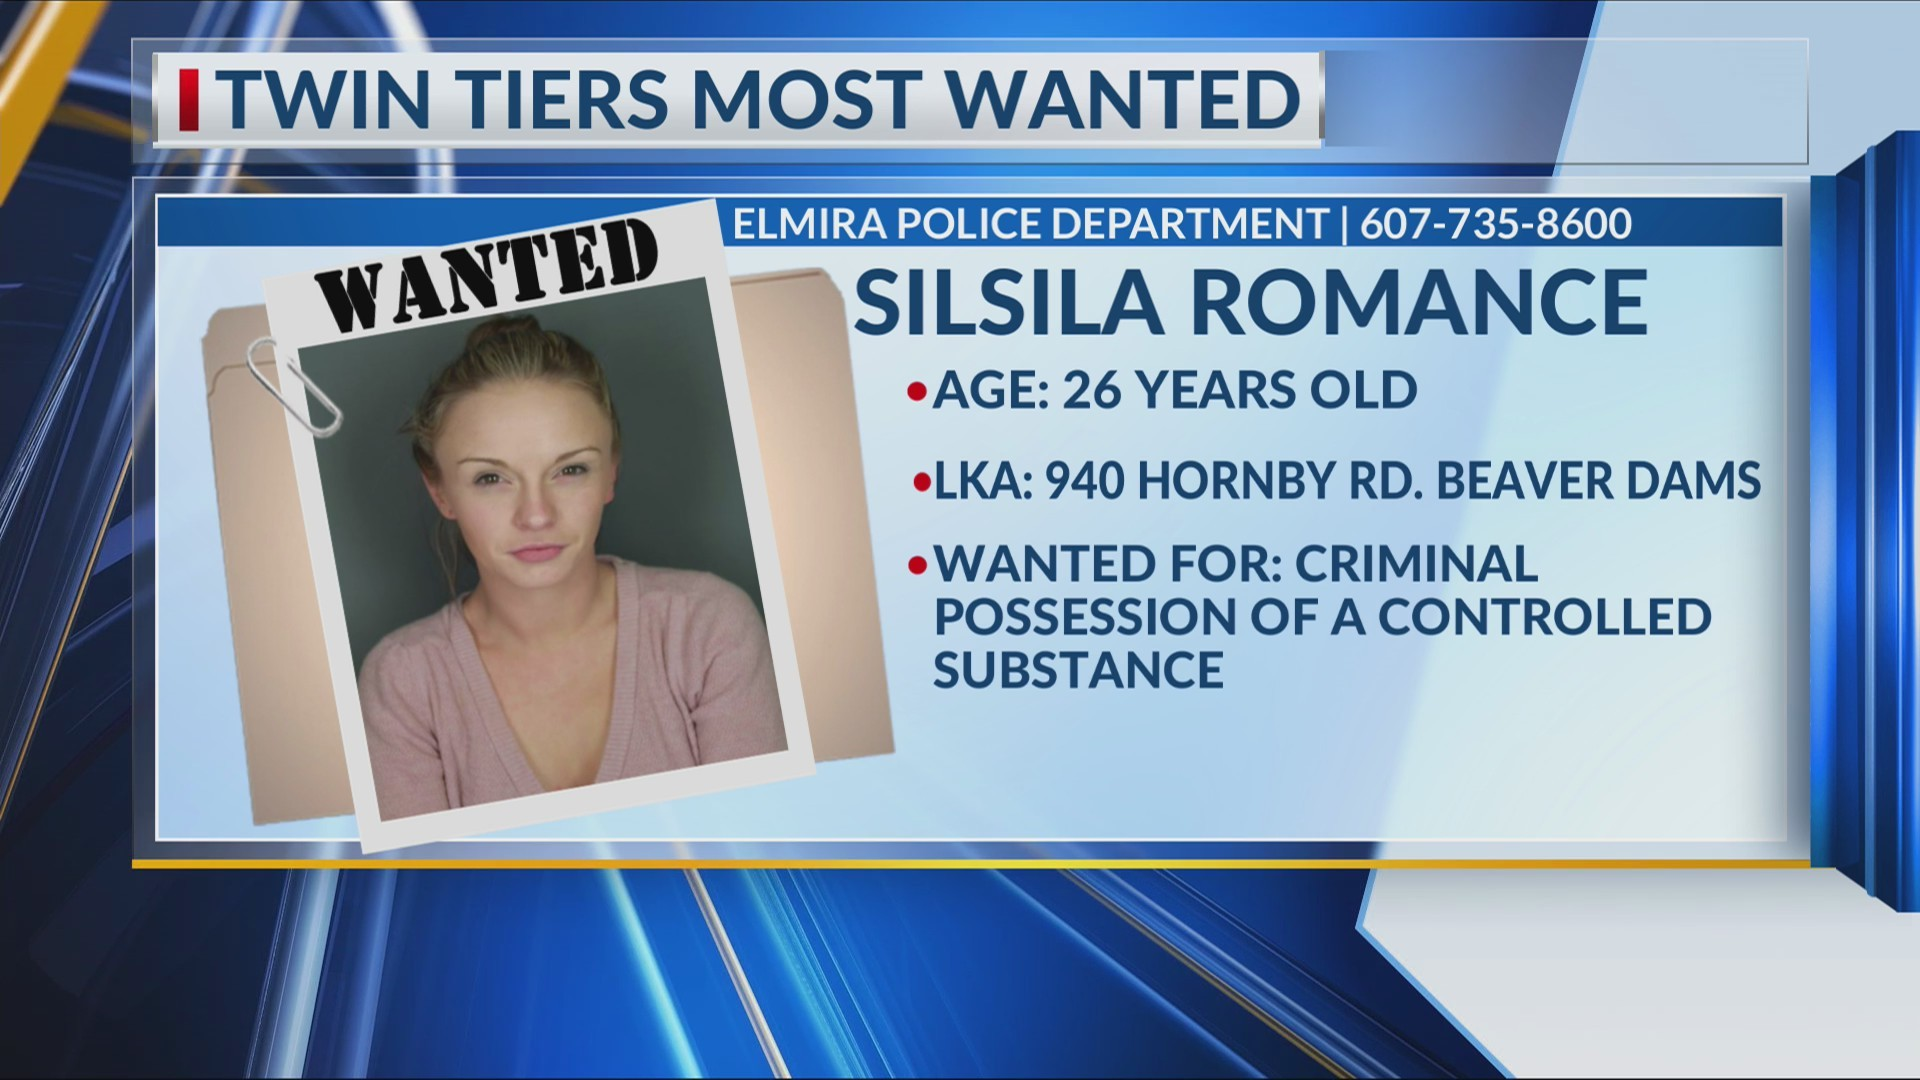 Twin Tiers Most Wanted 5/16/19